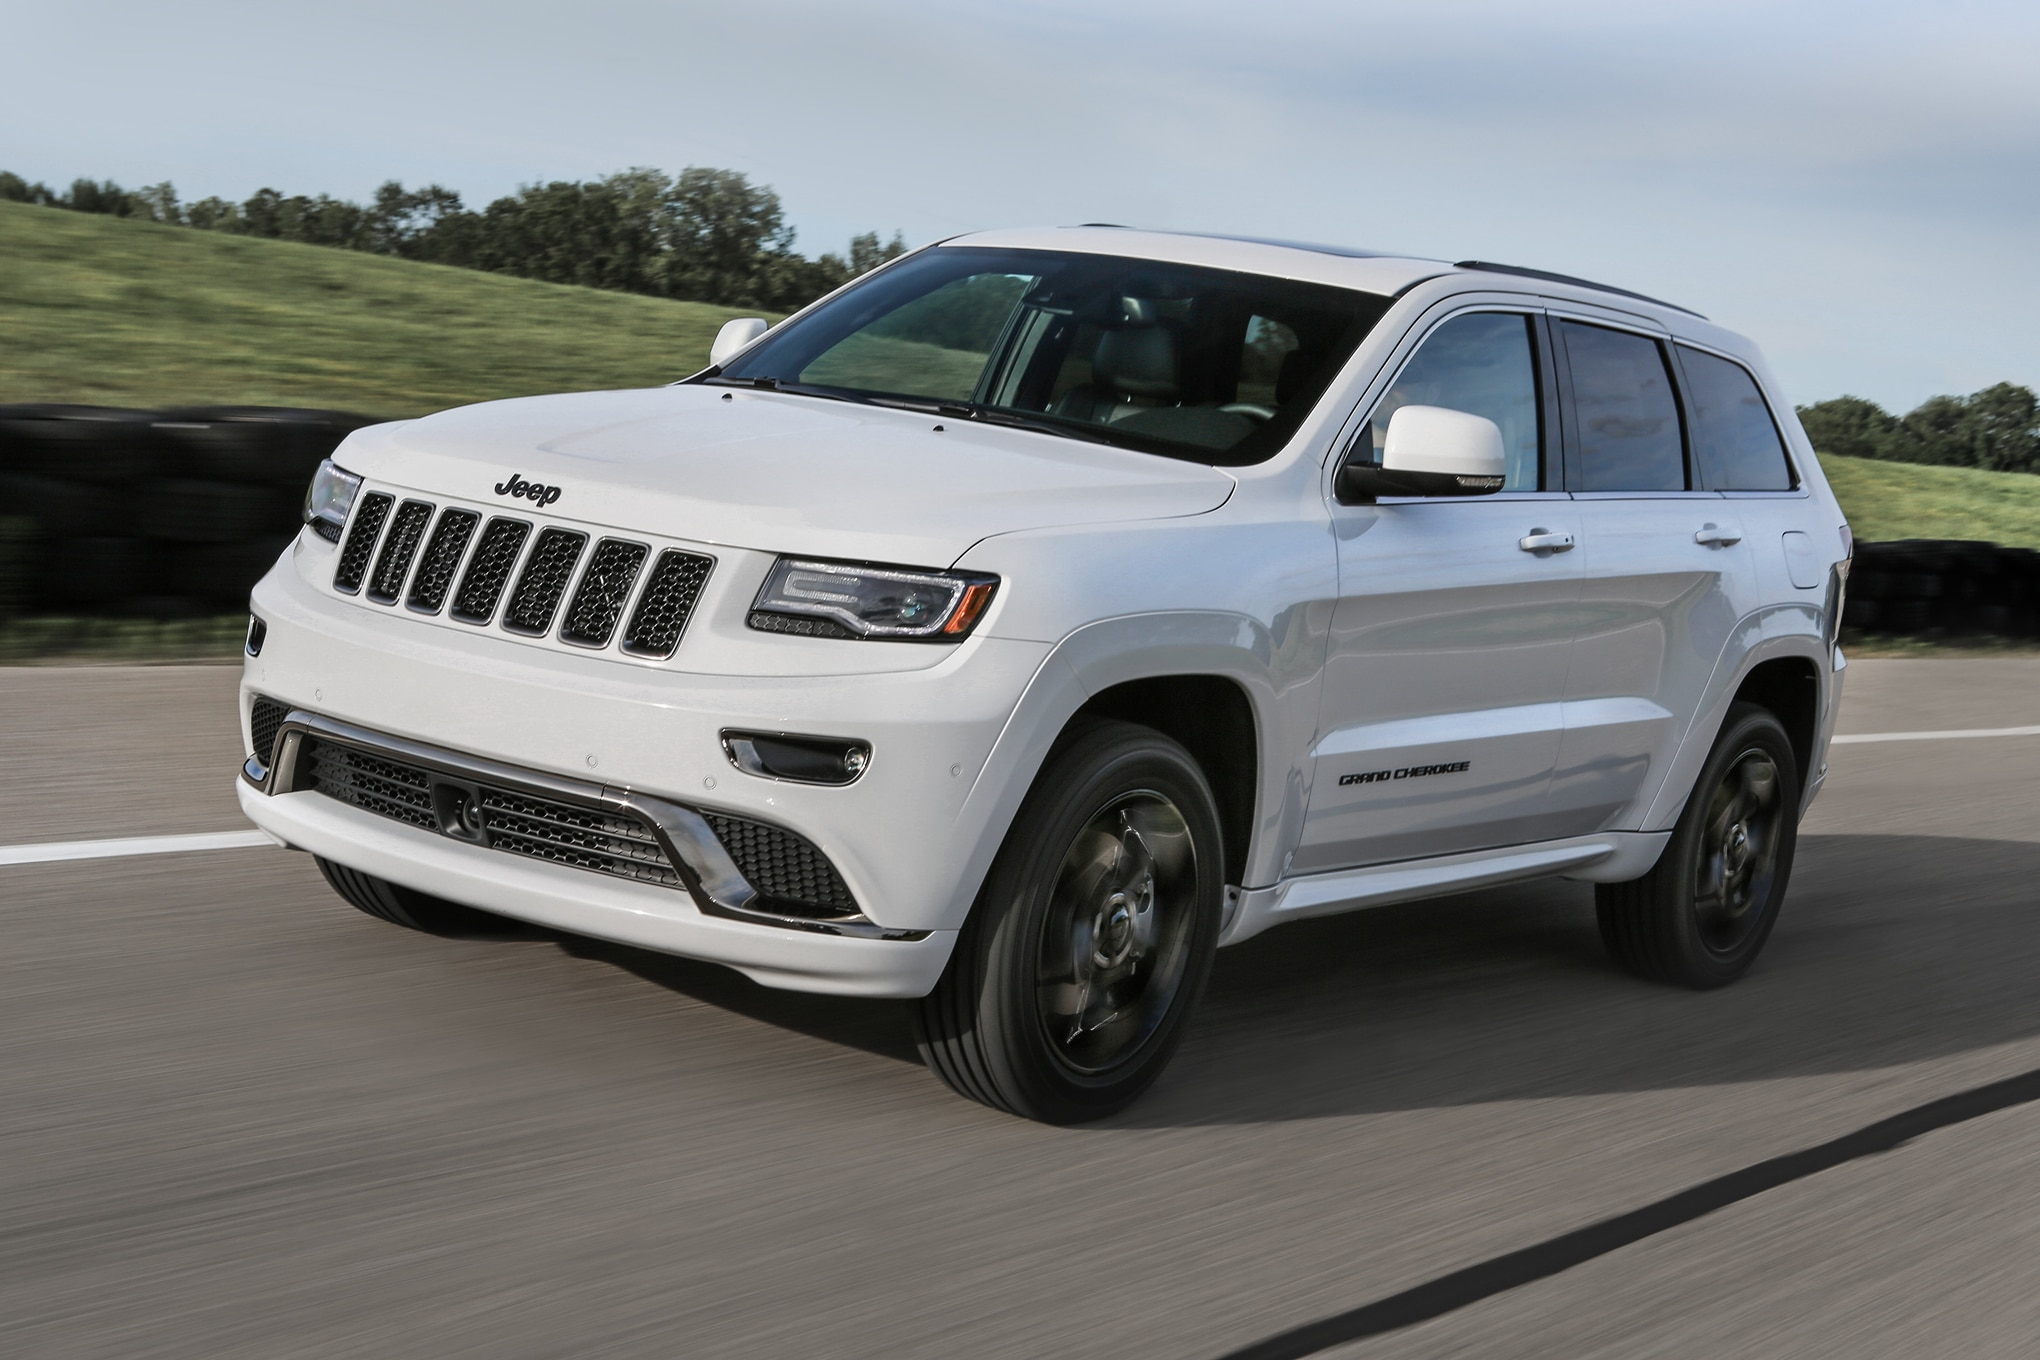 2016 Jeep Grand Cherokee High Altitude front three quarter in motion1?interpolation=lanczos none&fit=around 660 440 37,000 2016 jeep grand cherokee suvs being recalled for shifter issue  at readyjetset.co